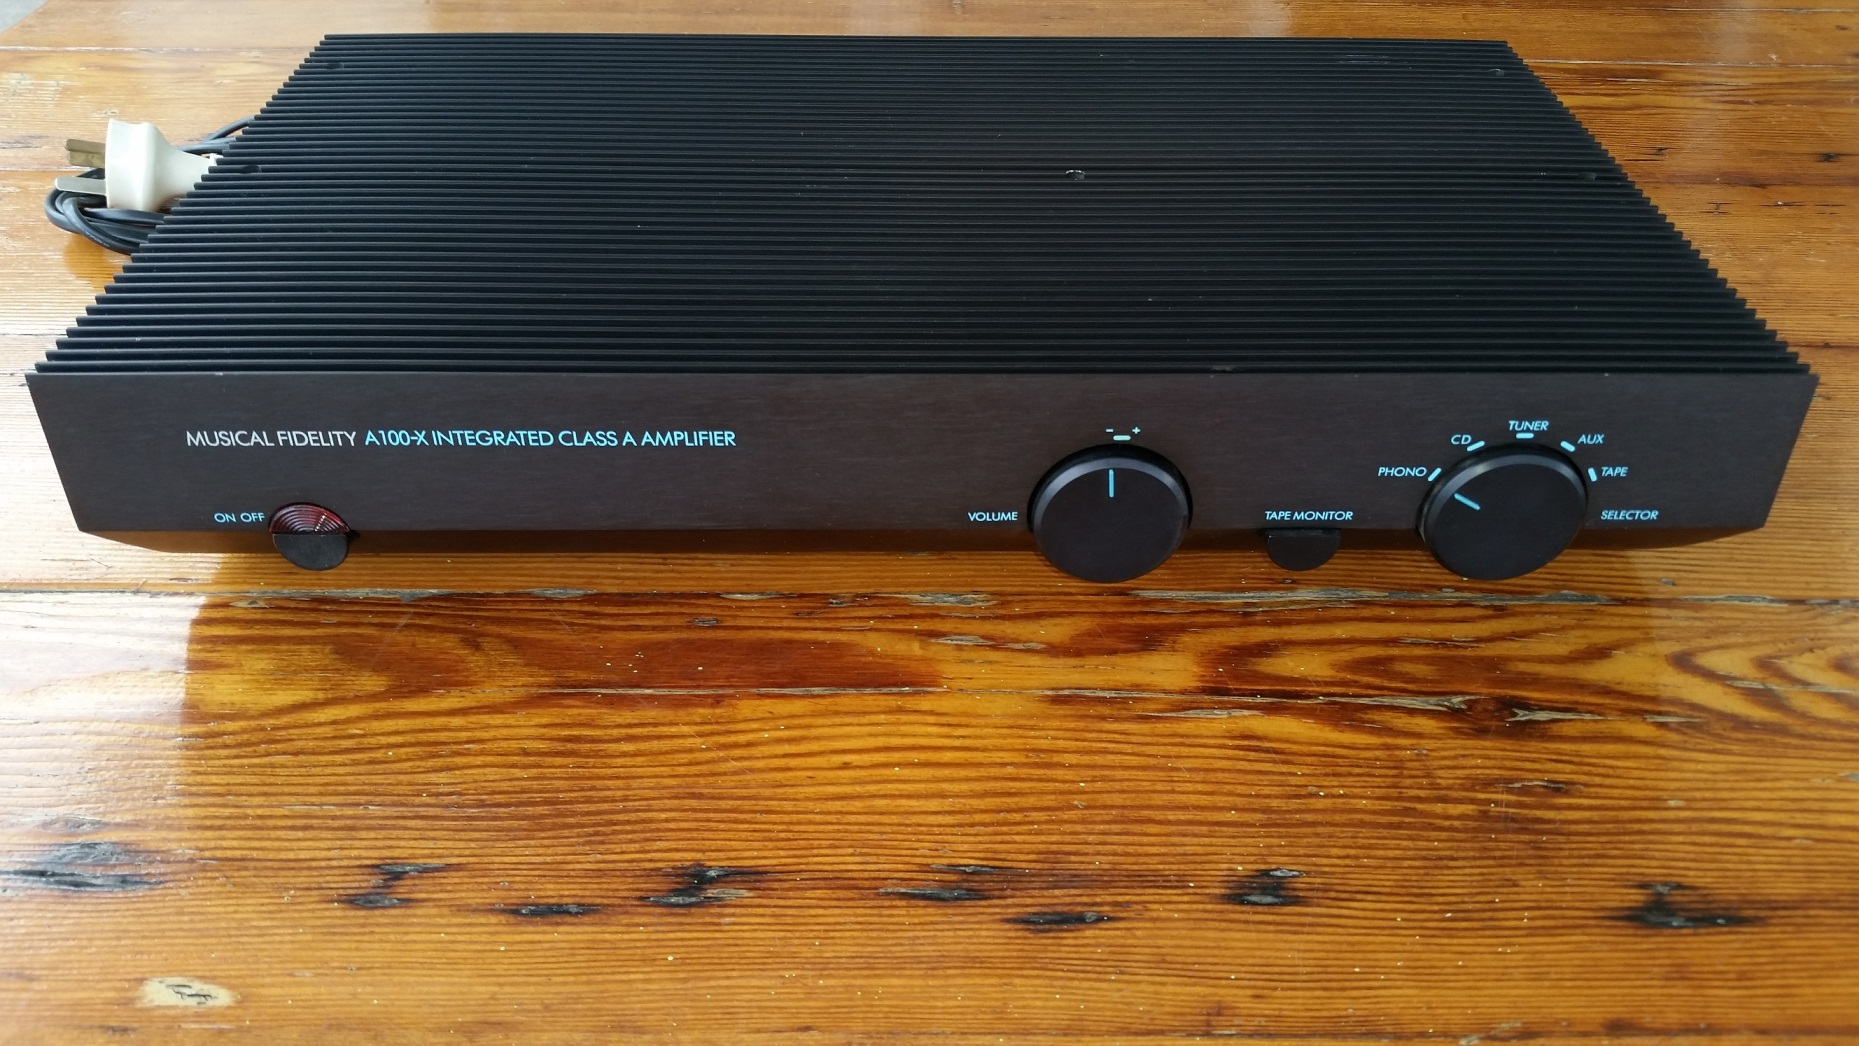 FS: Musical Fidelity A100-X - Class A Integrated Amp